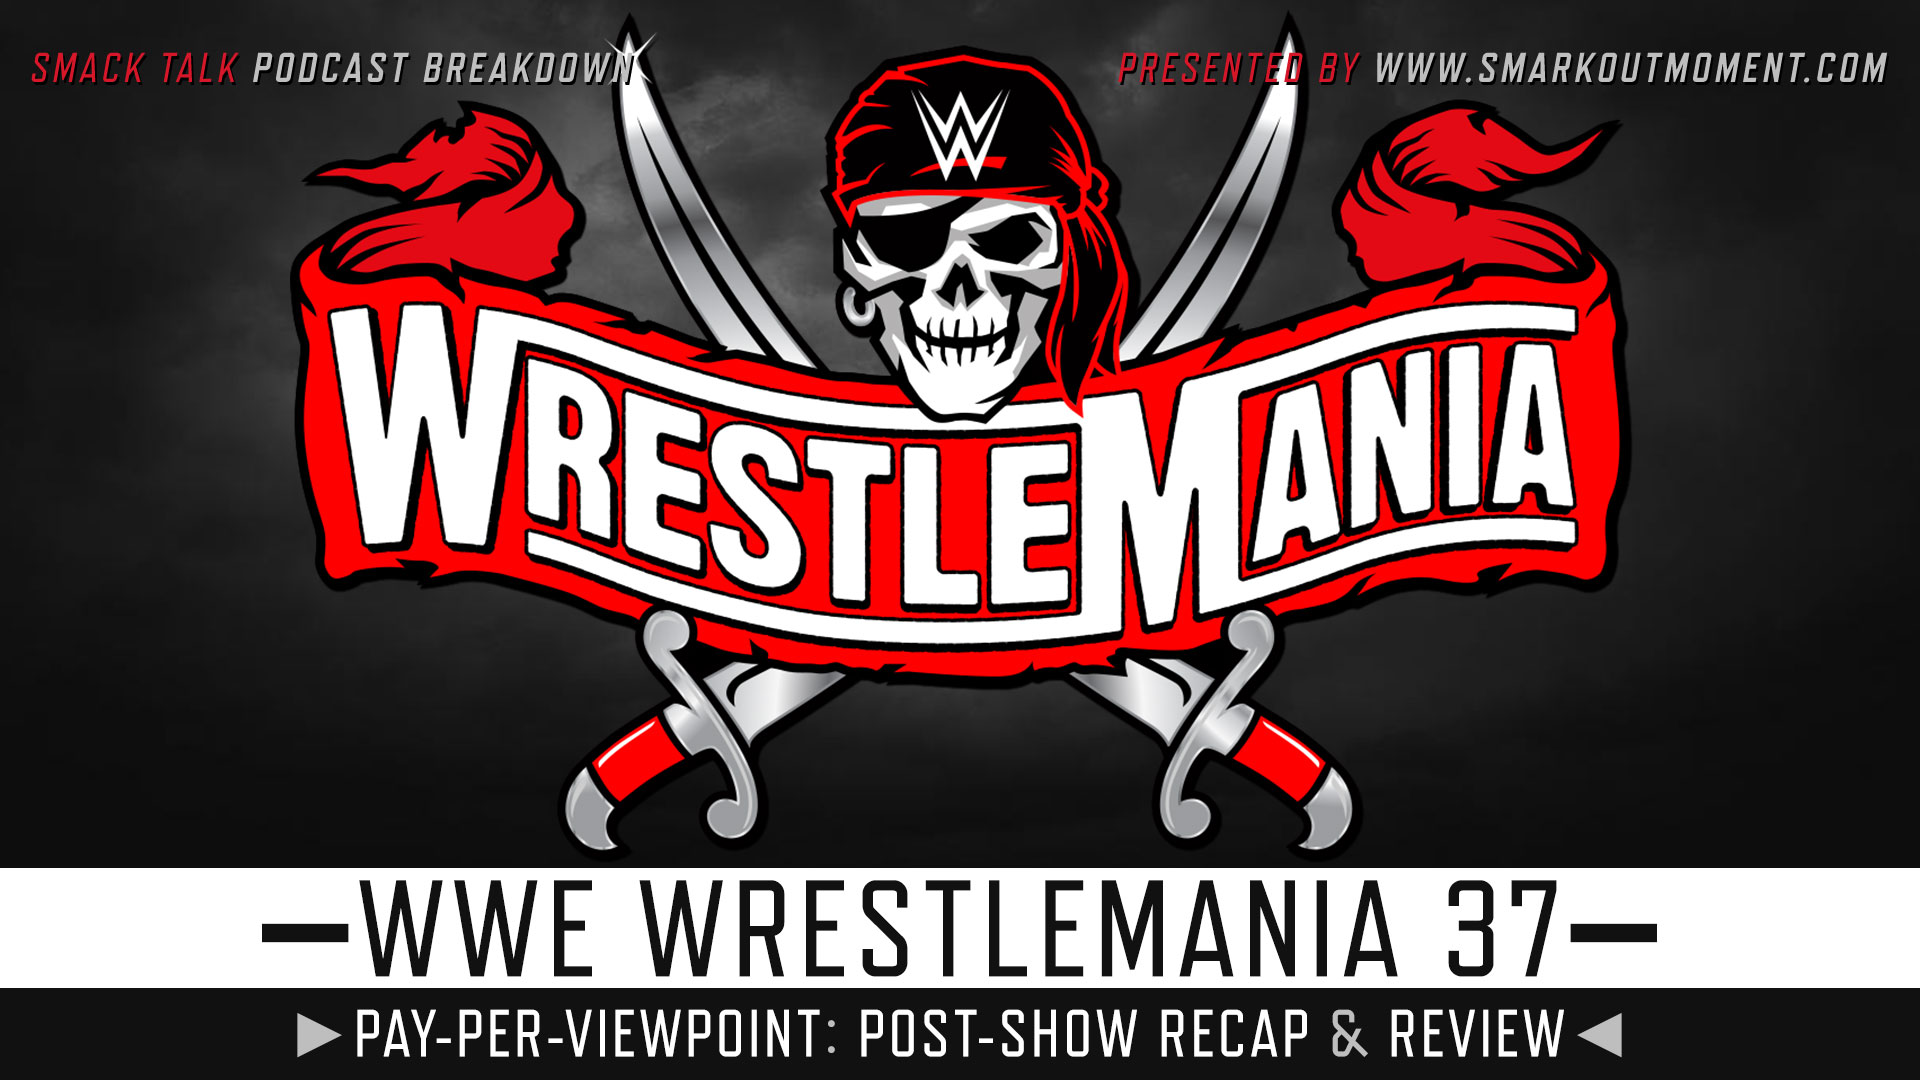 WWE WrestleMania 37 Recap and Review Podcast